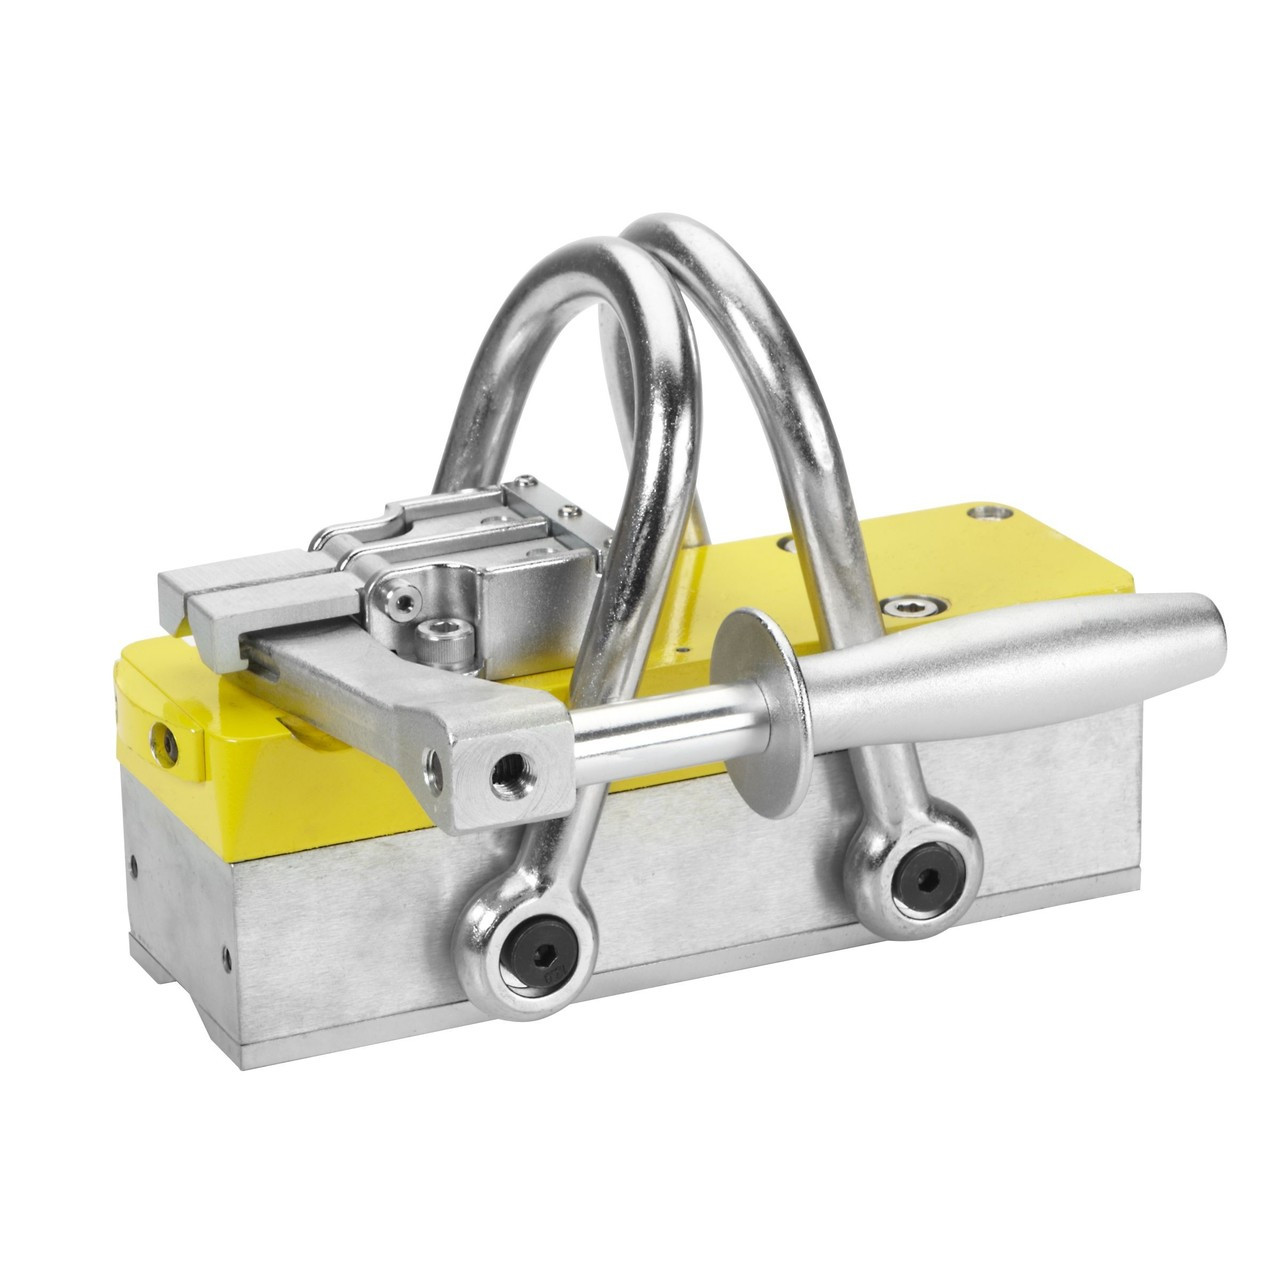 Light Equipment & Tools 60-M Hand Lifter 60-M Manual Magswitch ...